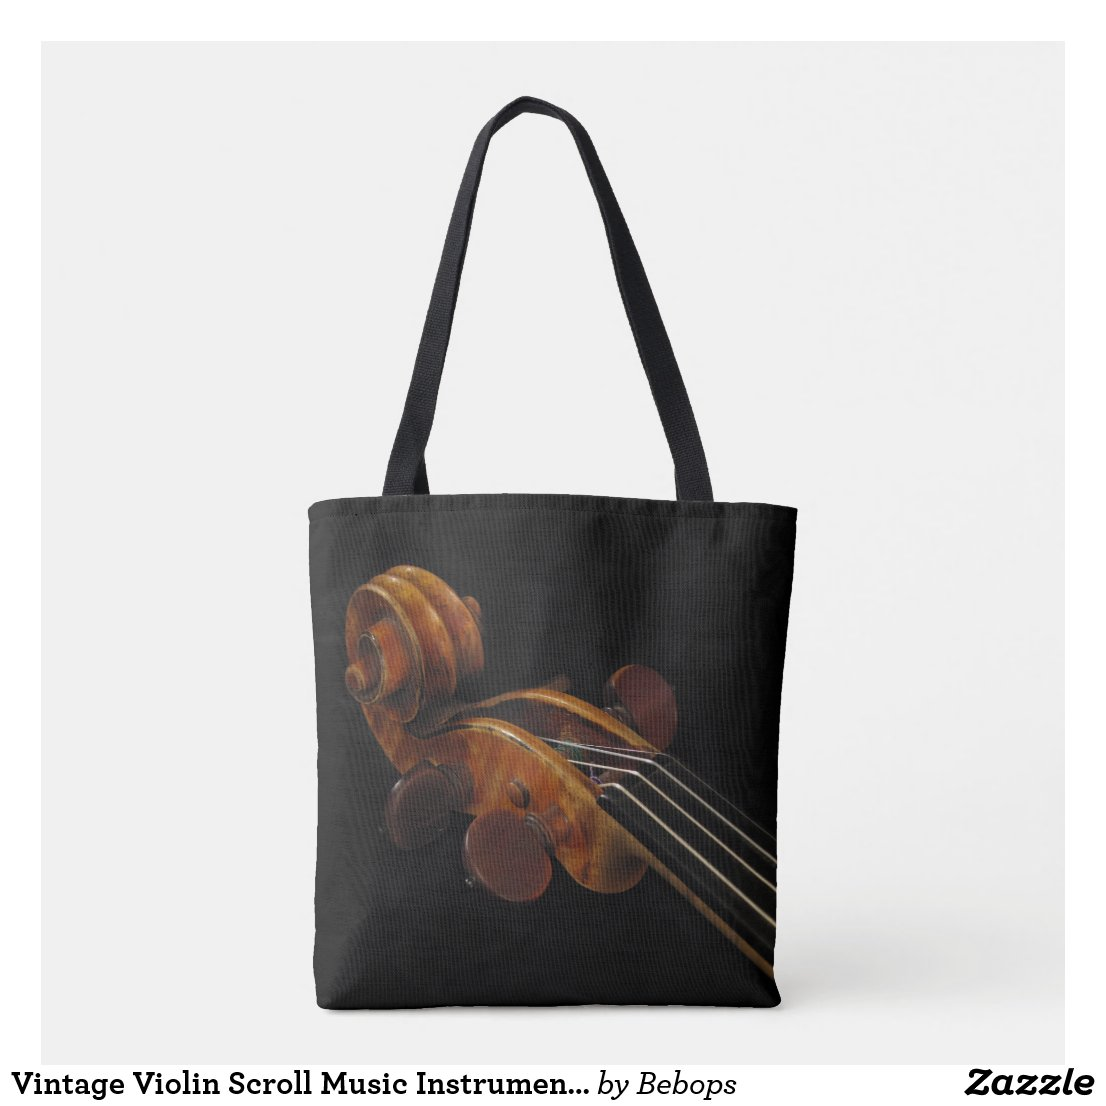 Vintage Violin Scroll Music Instrument Tote Bag